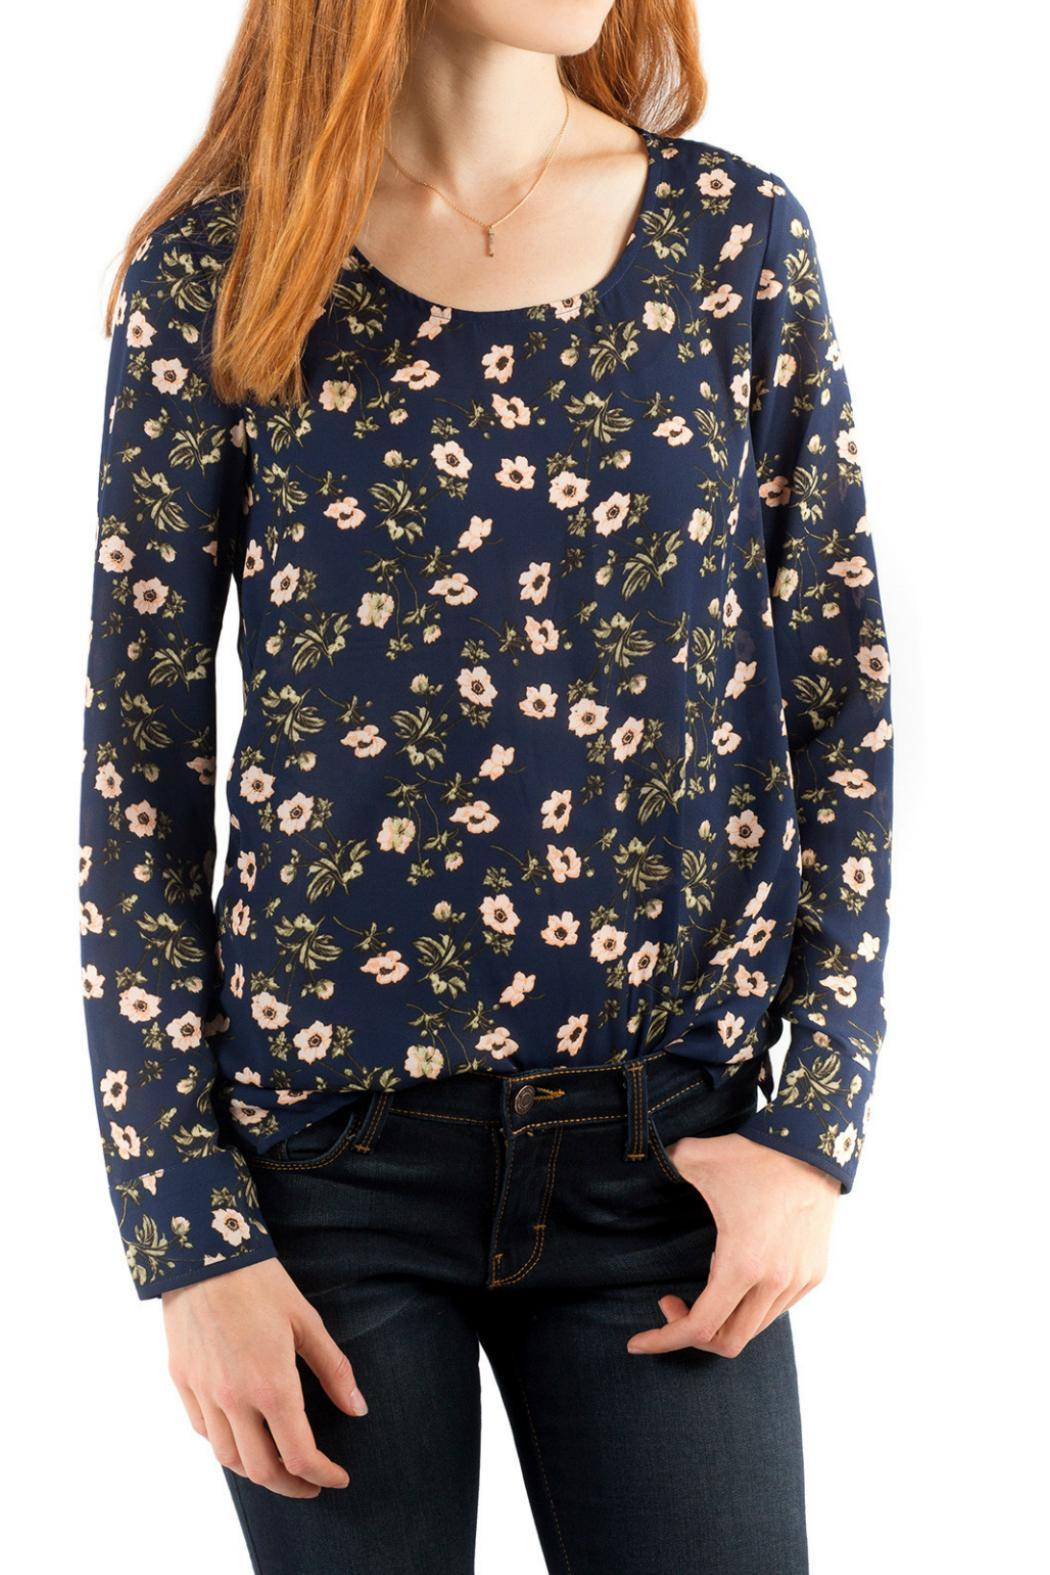 Downeast Basics Zurich Floral Top - Front Cropped Image